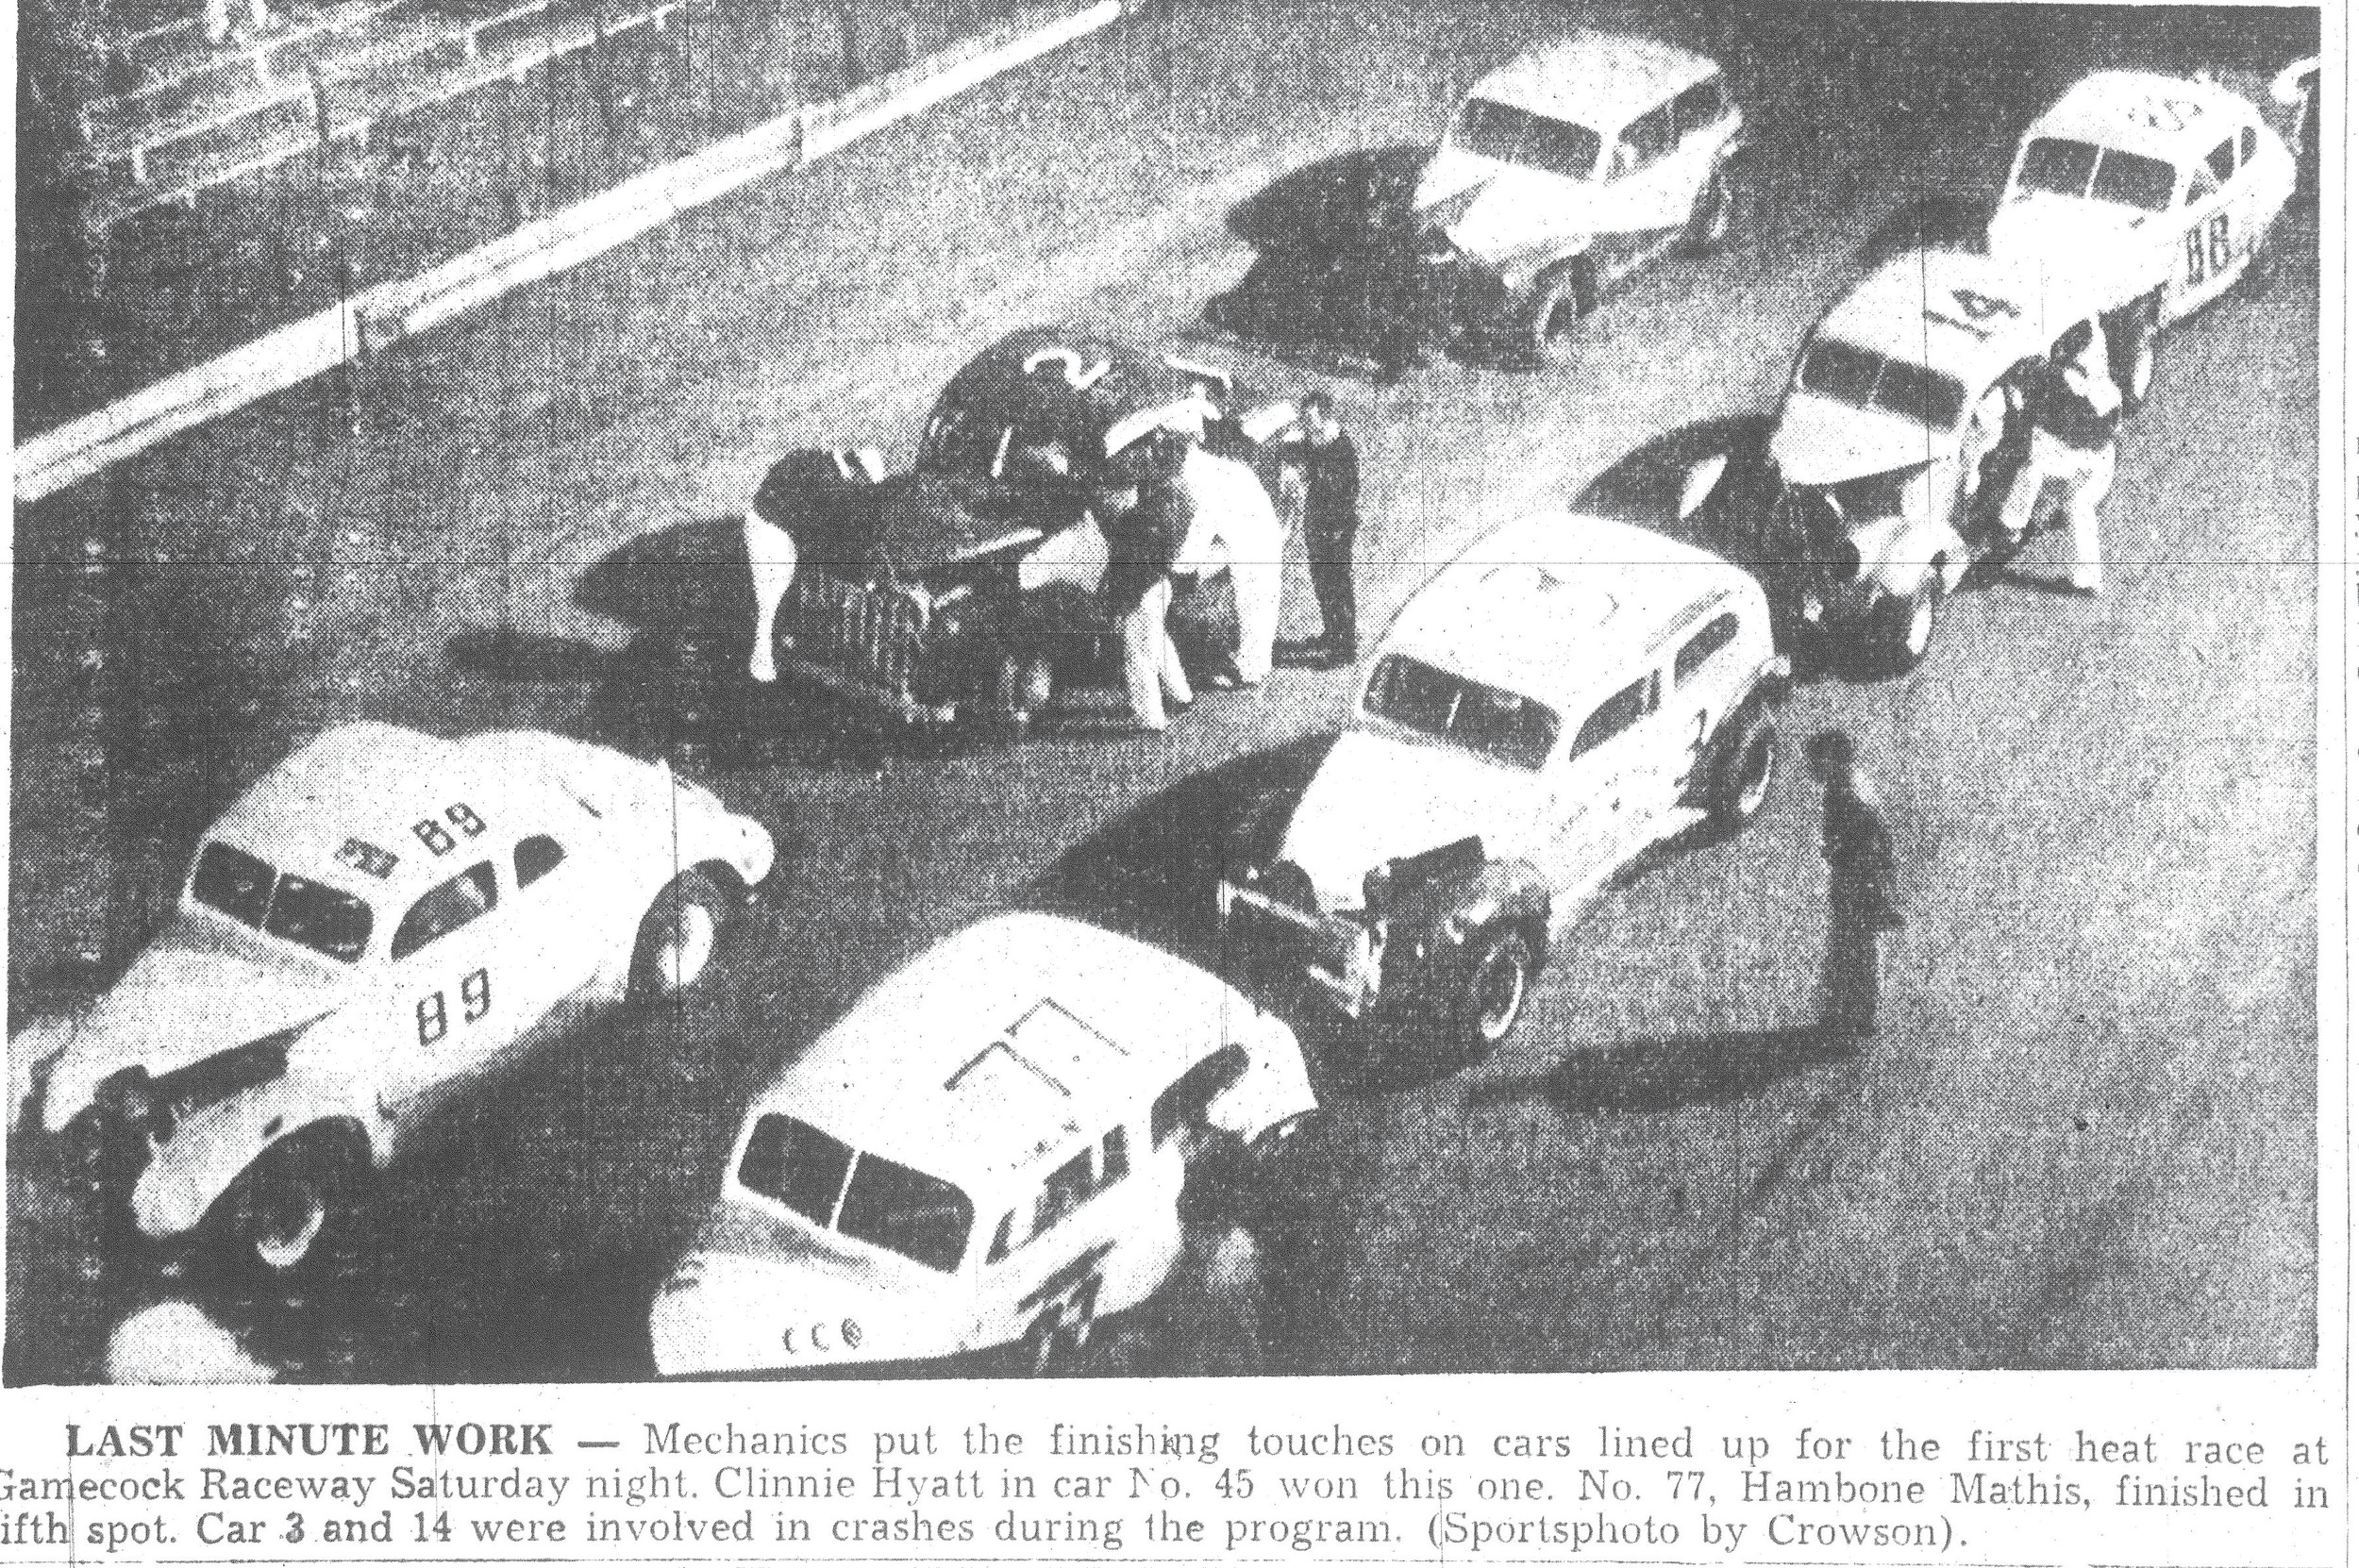 Mechanics put the finishing touches on cars lined up for the first heat race at Gamecock Raceway on a Saturday night in 1957.